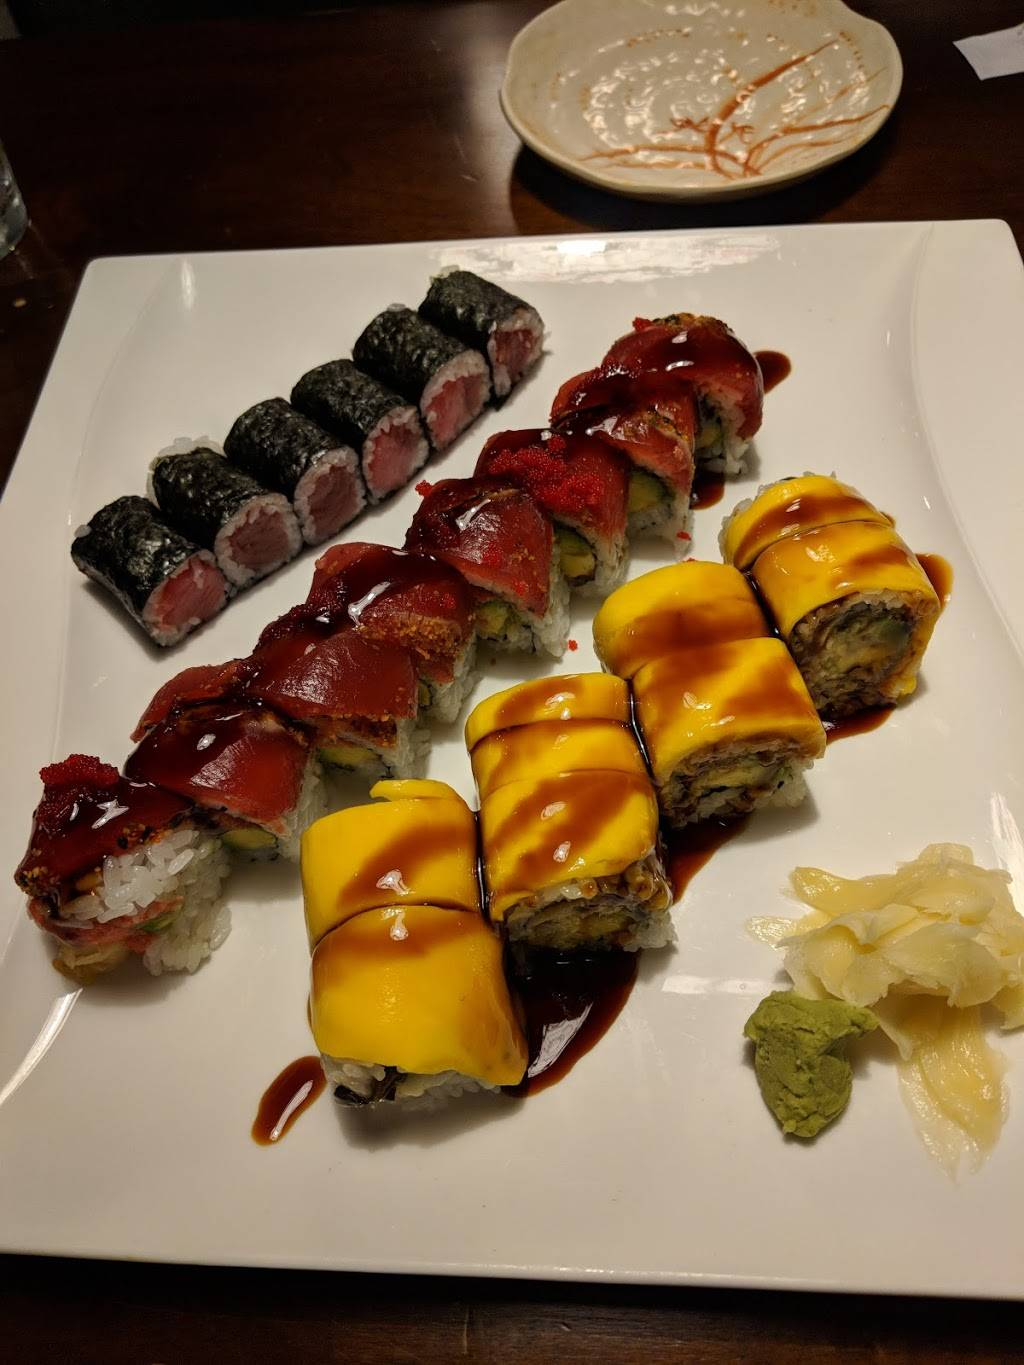 Japanica II | restaurant | 854 Washington St, Middletown, CT 06457, USA | 8603464498 OR +1 860-346-4498